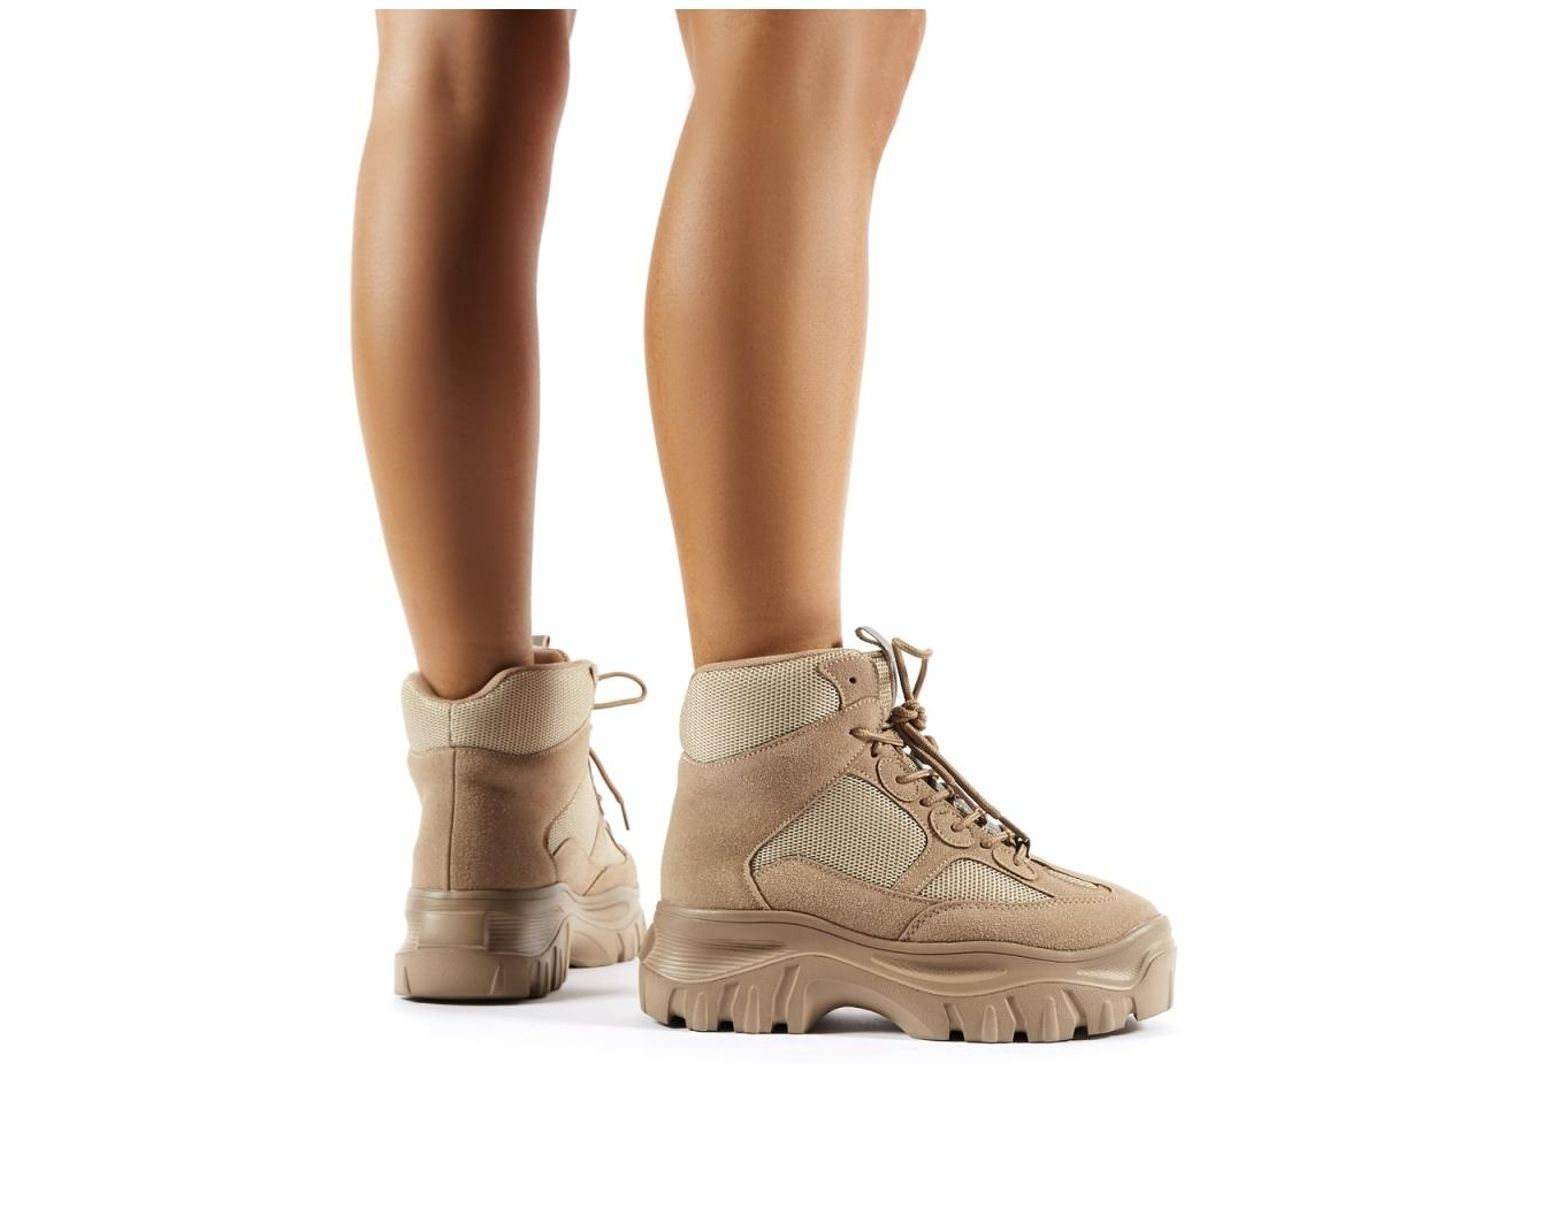 bef1ae0762e Women's Natural Ironic Sand Chunky Sole Ankle Boots